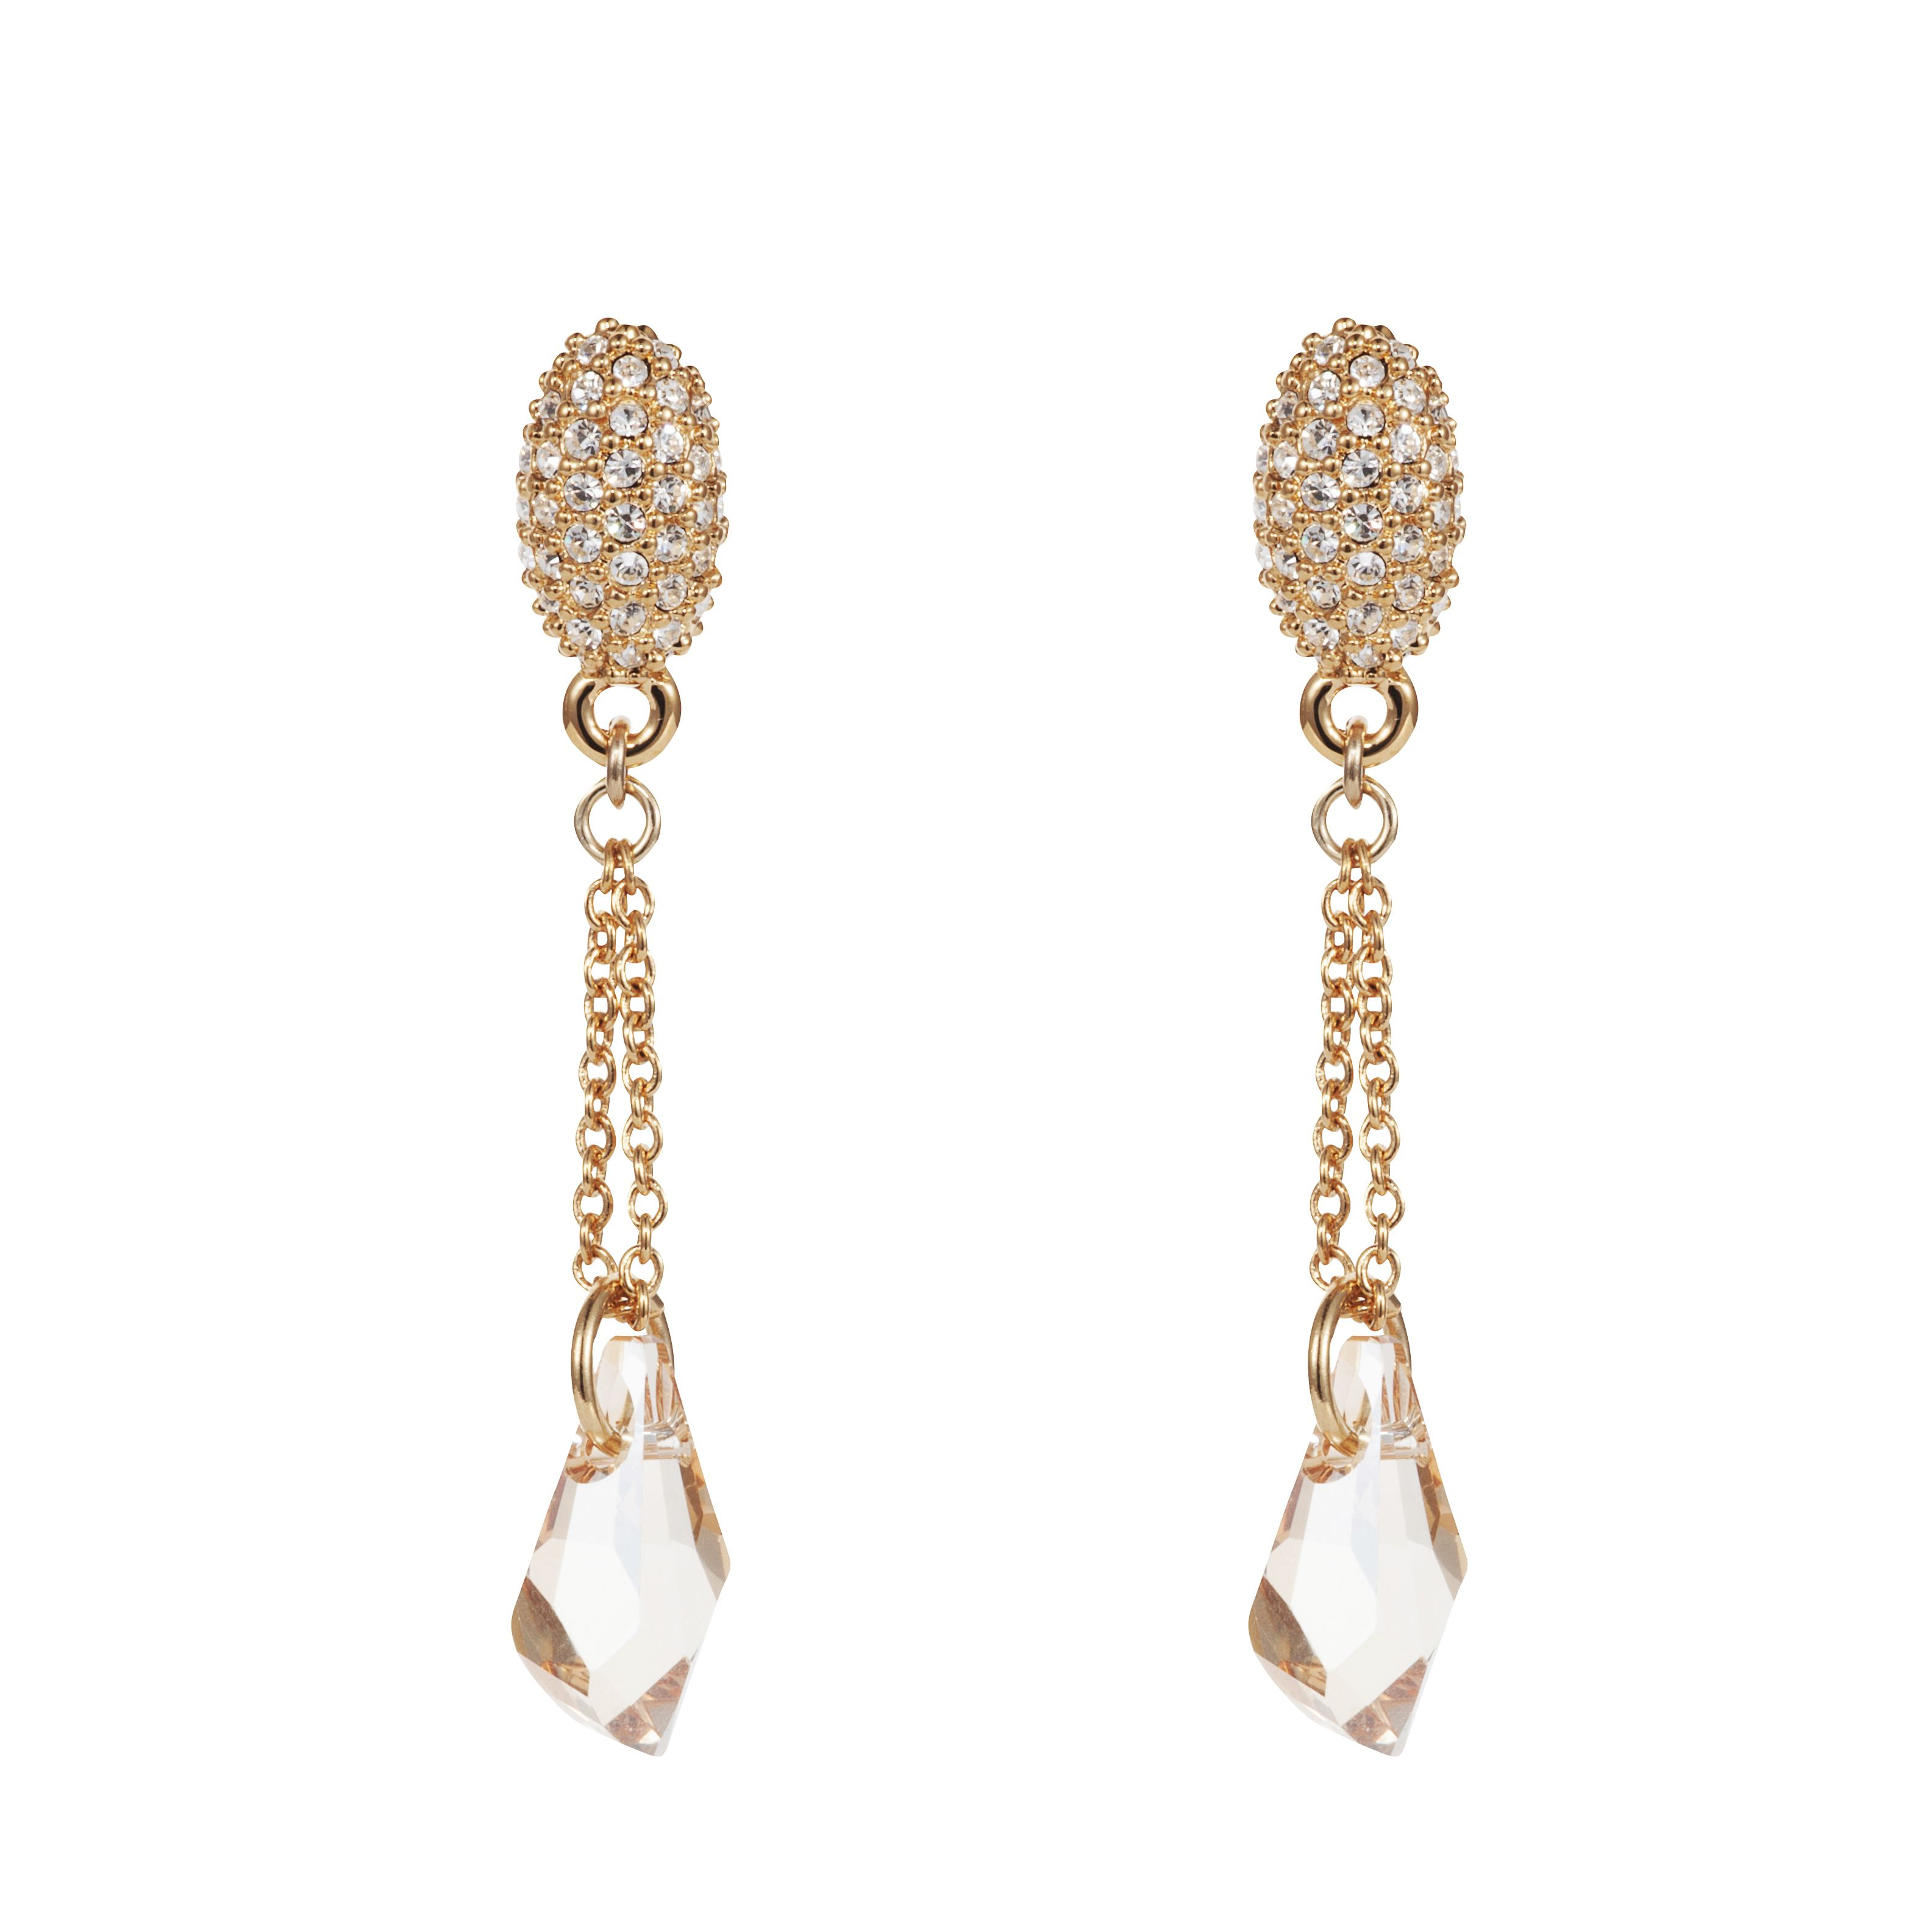 18ct gold plated titania fancy drop earrings